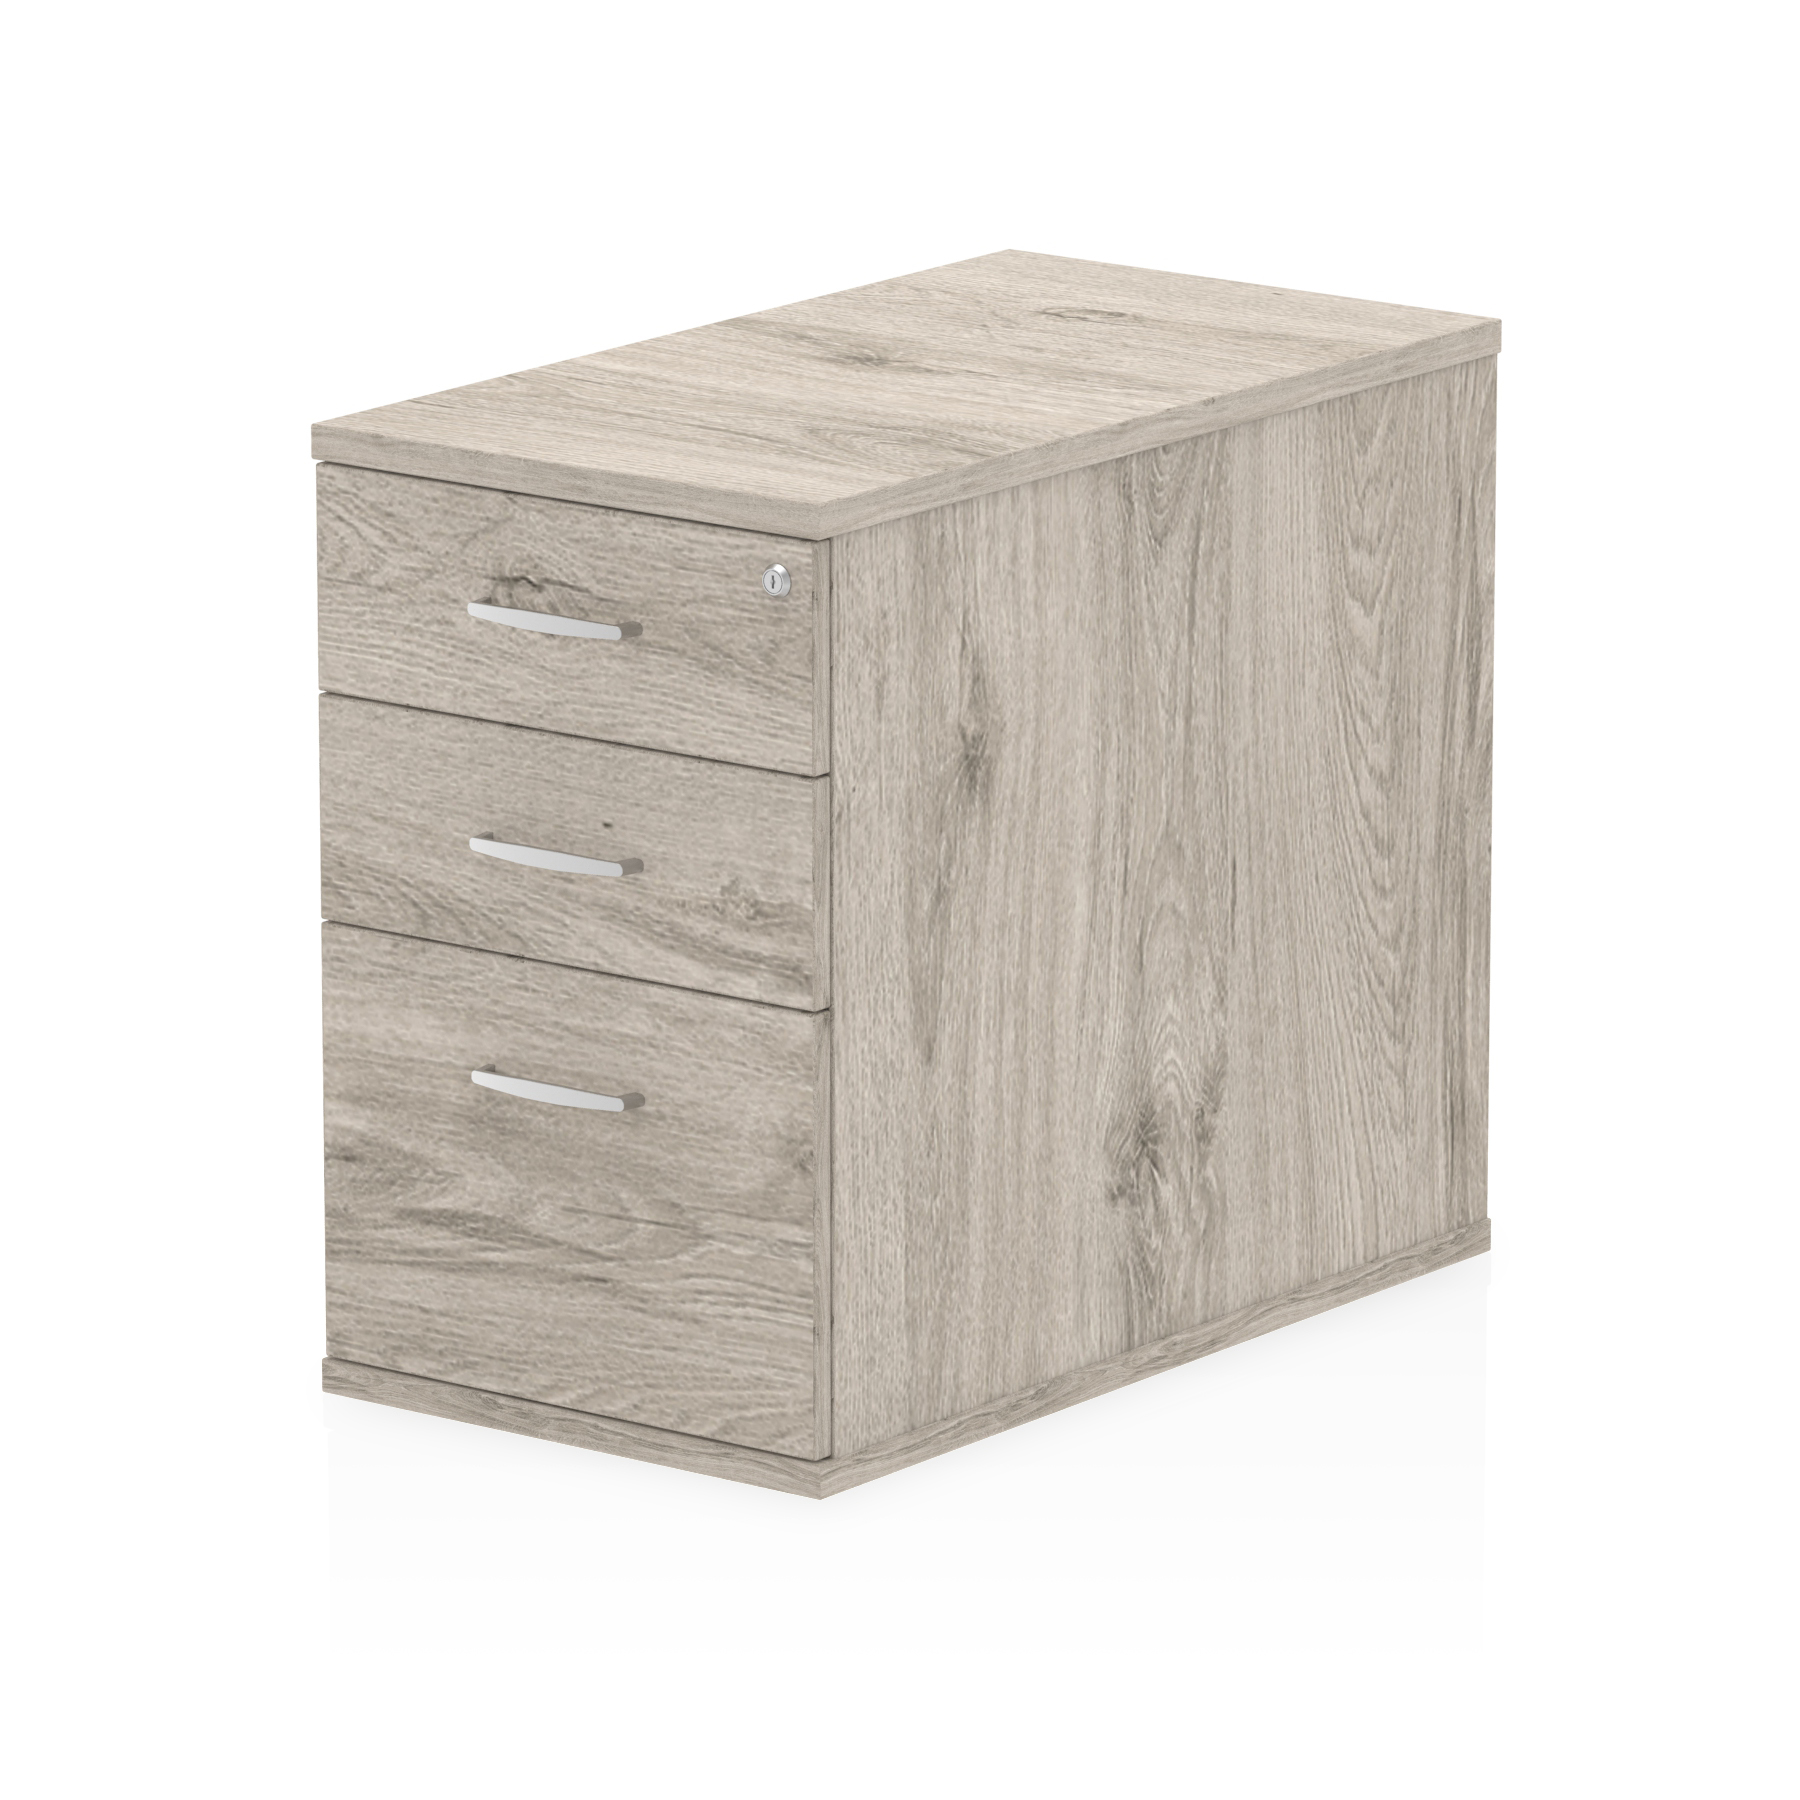 Pedestals Trexus Desk High 3 Drawer 800D Pedestal 425x800x730mm Grey Oak Ref I003222